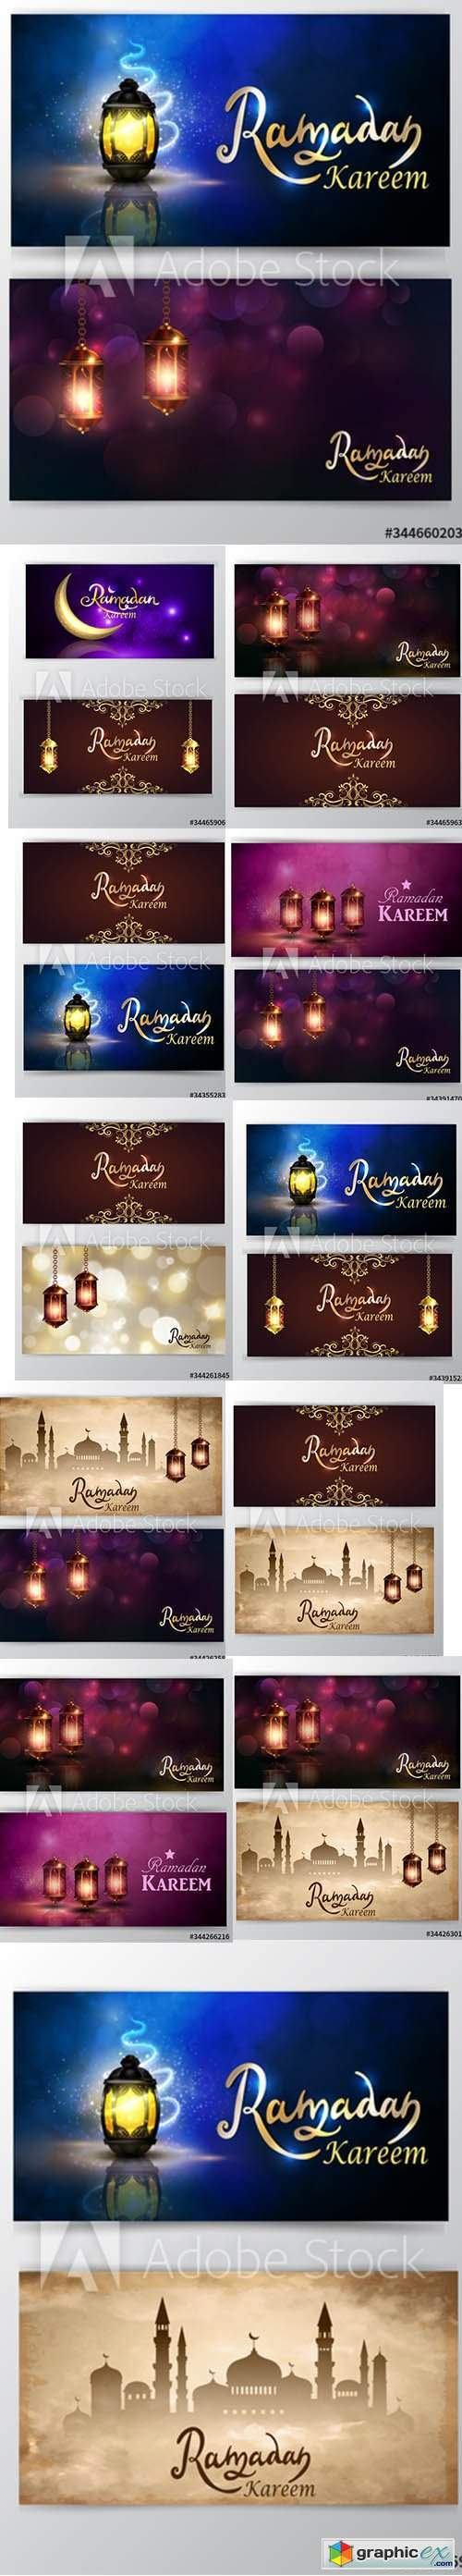 Ramadan Kareem greeting background set of cards